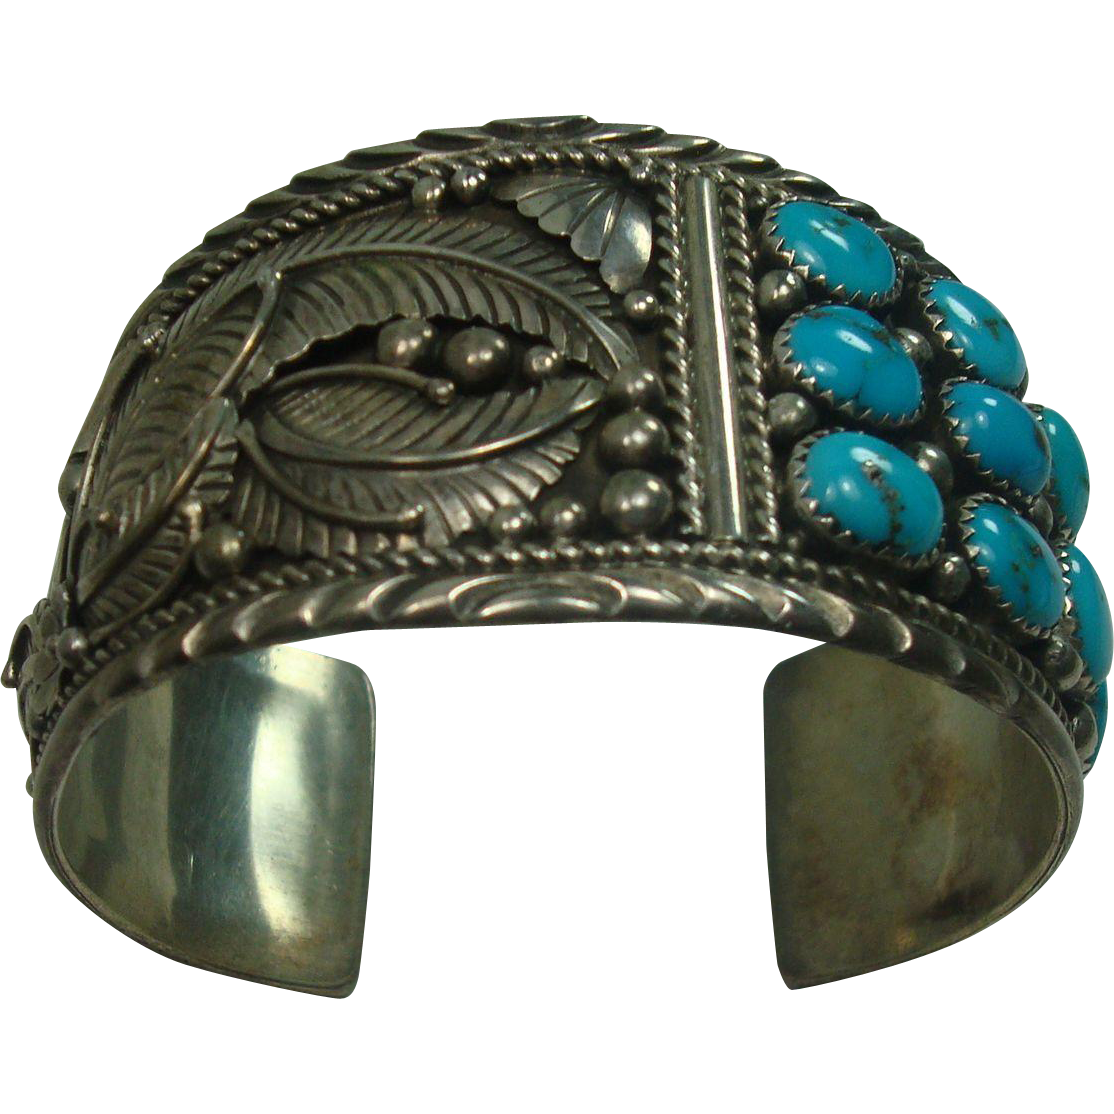 Signed Fannie Platero Ornate Turquoise Sterling Cuff Bracelet